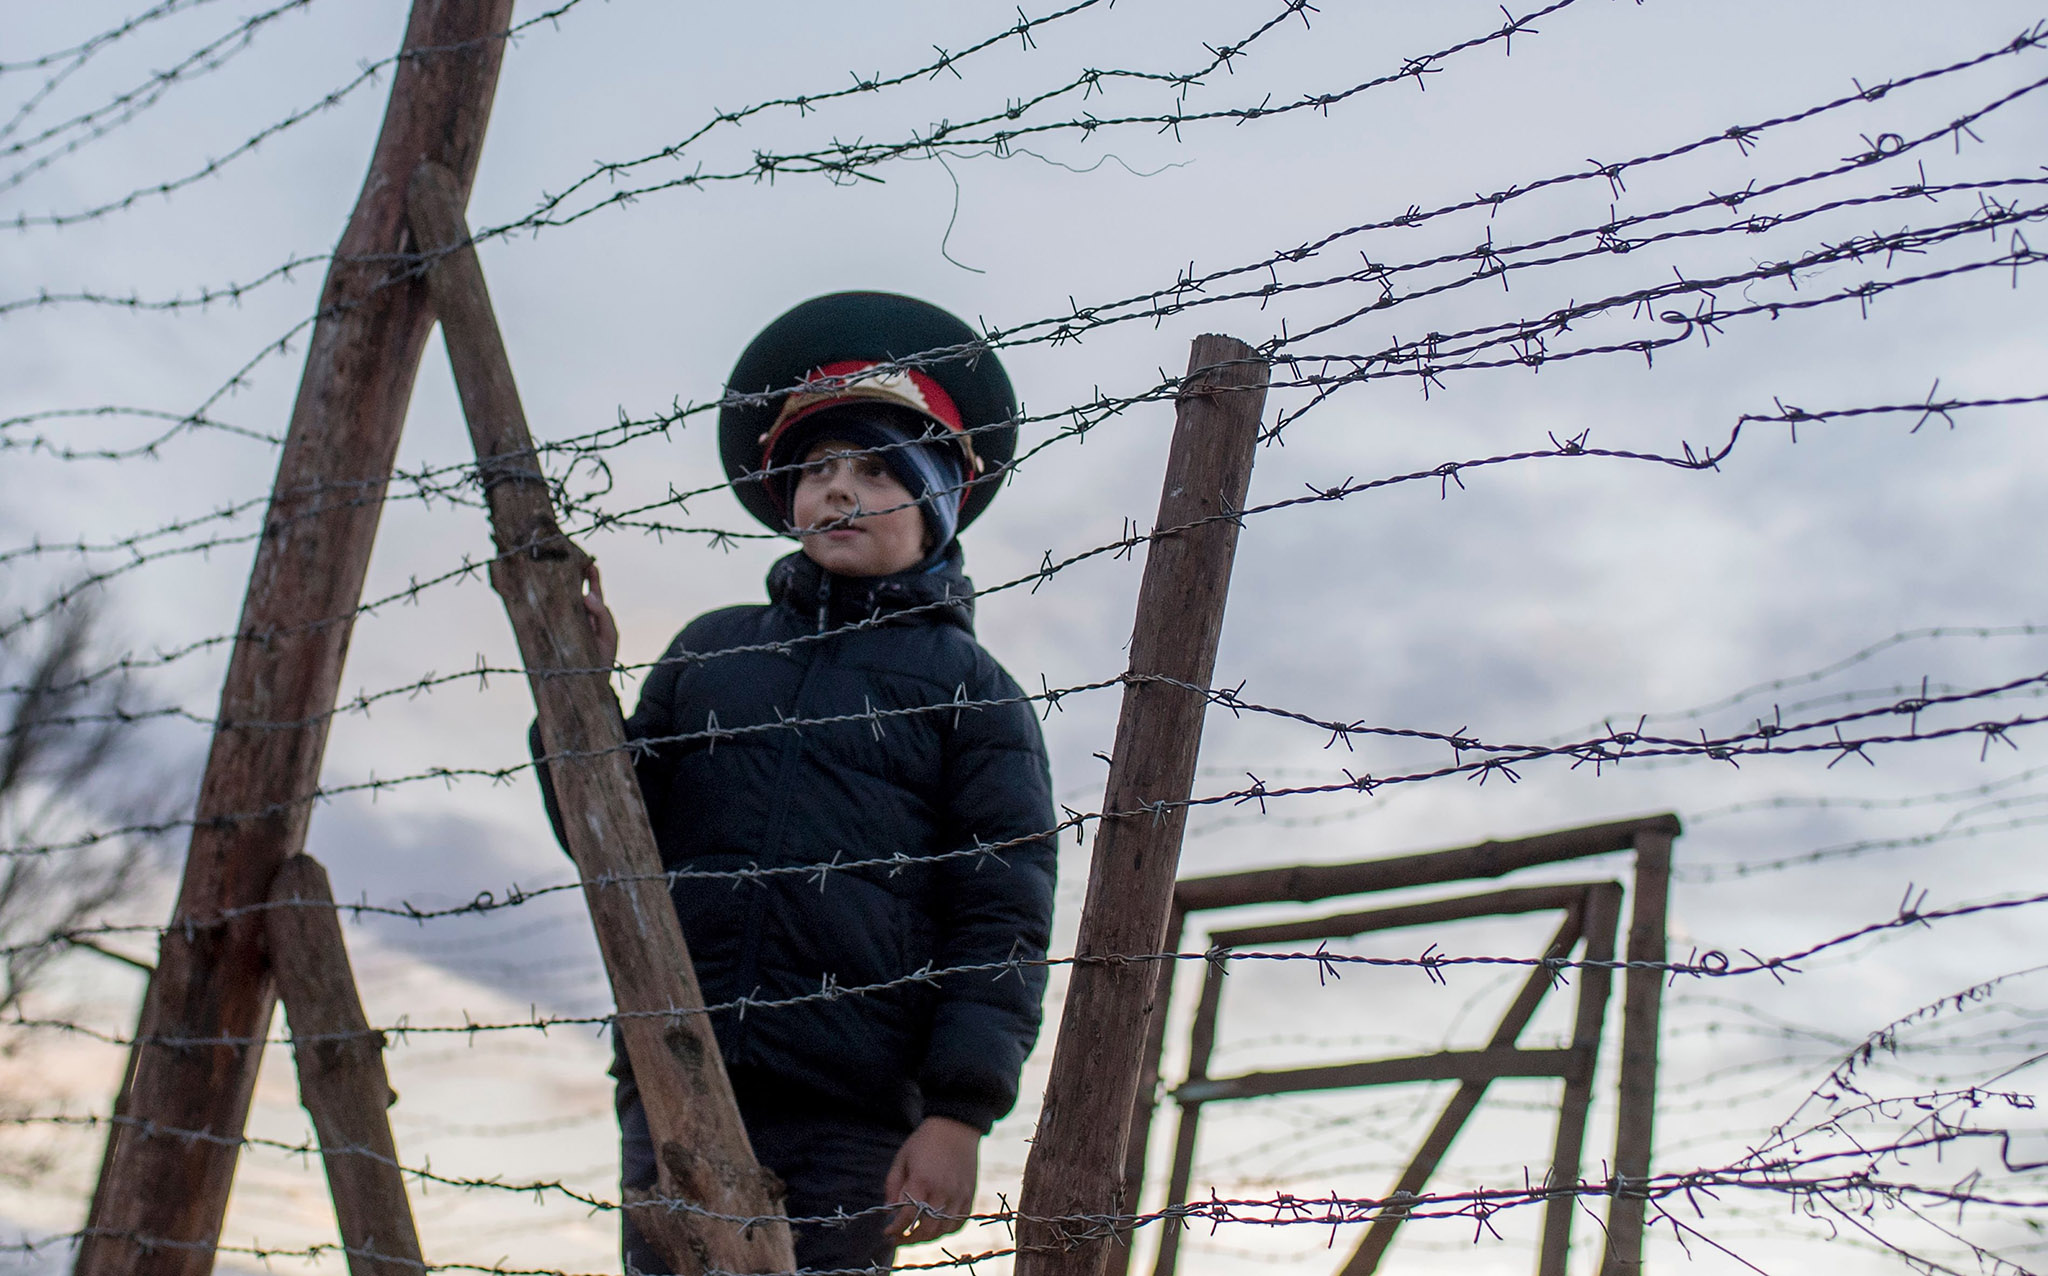 Matus, a seven-year-old Slovak boy, wears a Soviet military hat as he stands by remains of the border fences from the former 'Iron curtain' between Slovakia and Austria on November 20,2016 near Bratislava, Slovakia.  The bridge was symbolically closed for 3 days to remeber victims who lost their lives trying to escape the communist regime. Slovaks and Czechs commemorated on 17 of November 26th anniversary of the Velvet revolution. / AFP PHOTO / JOE KLAMARJOE KLAMAR/AFP/Getty Images